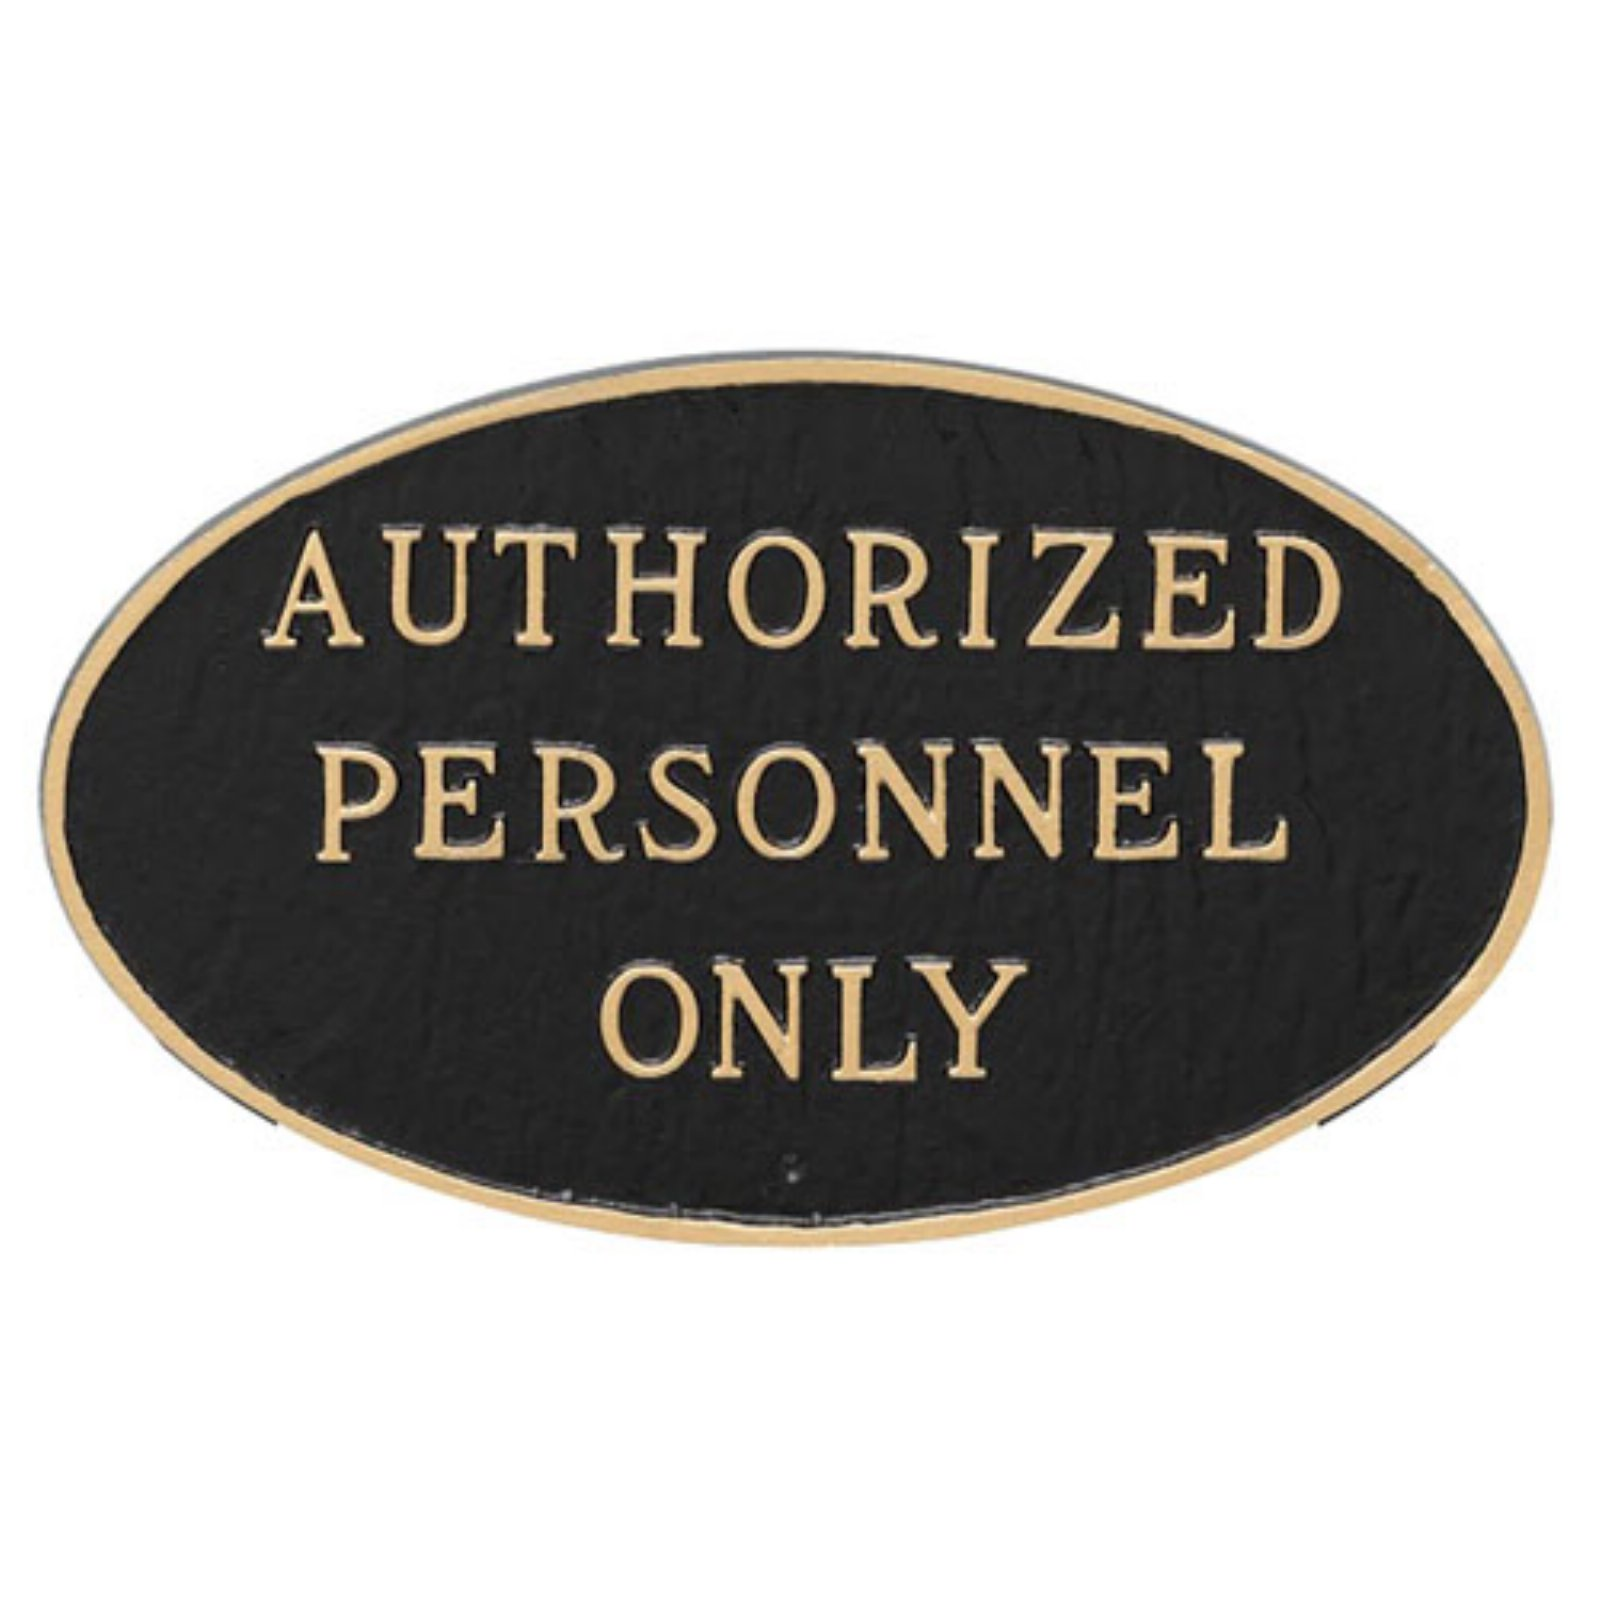 Montague Metal Products Authorized Personnel Only Oval Wall Plaque